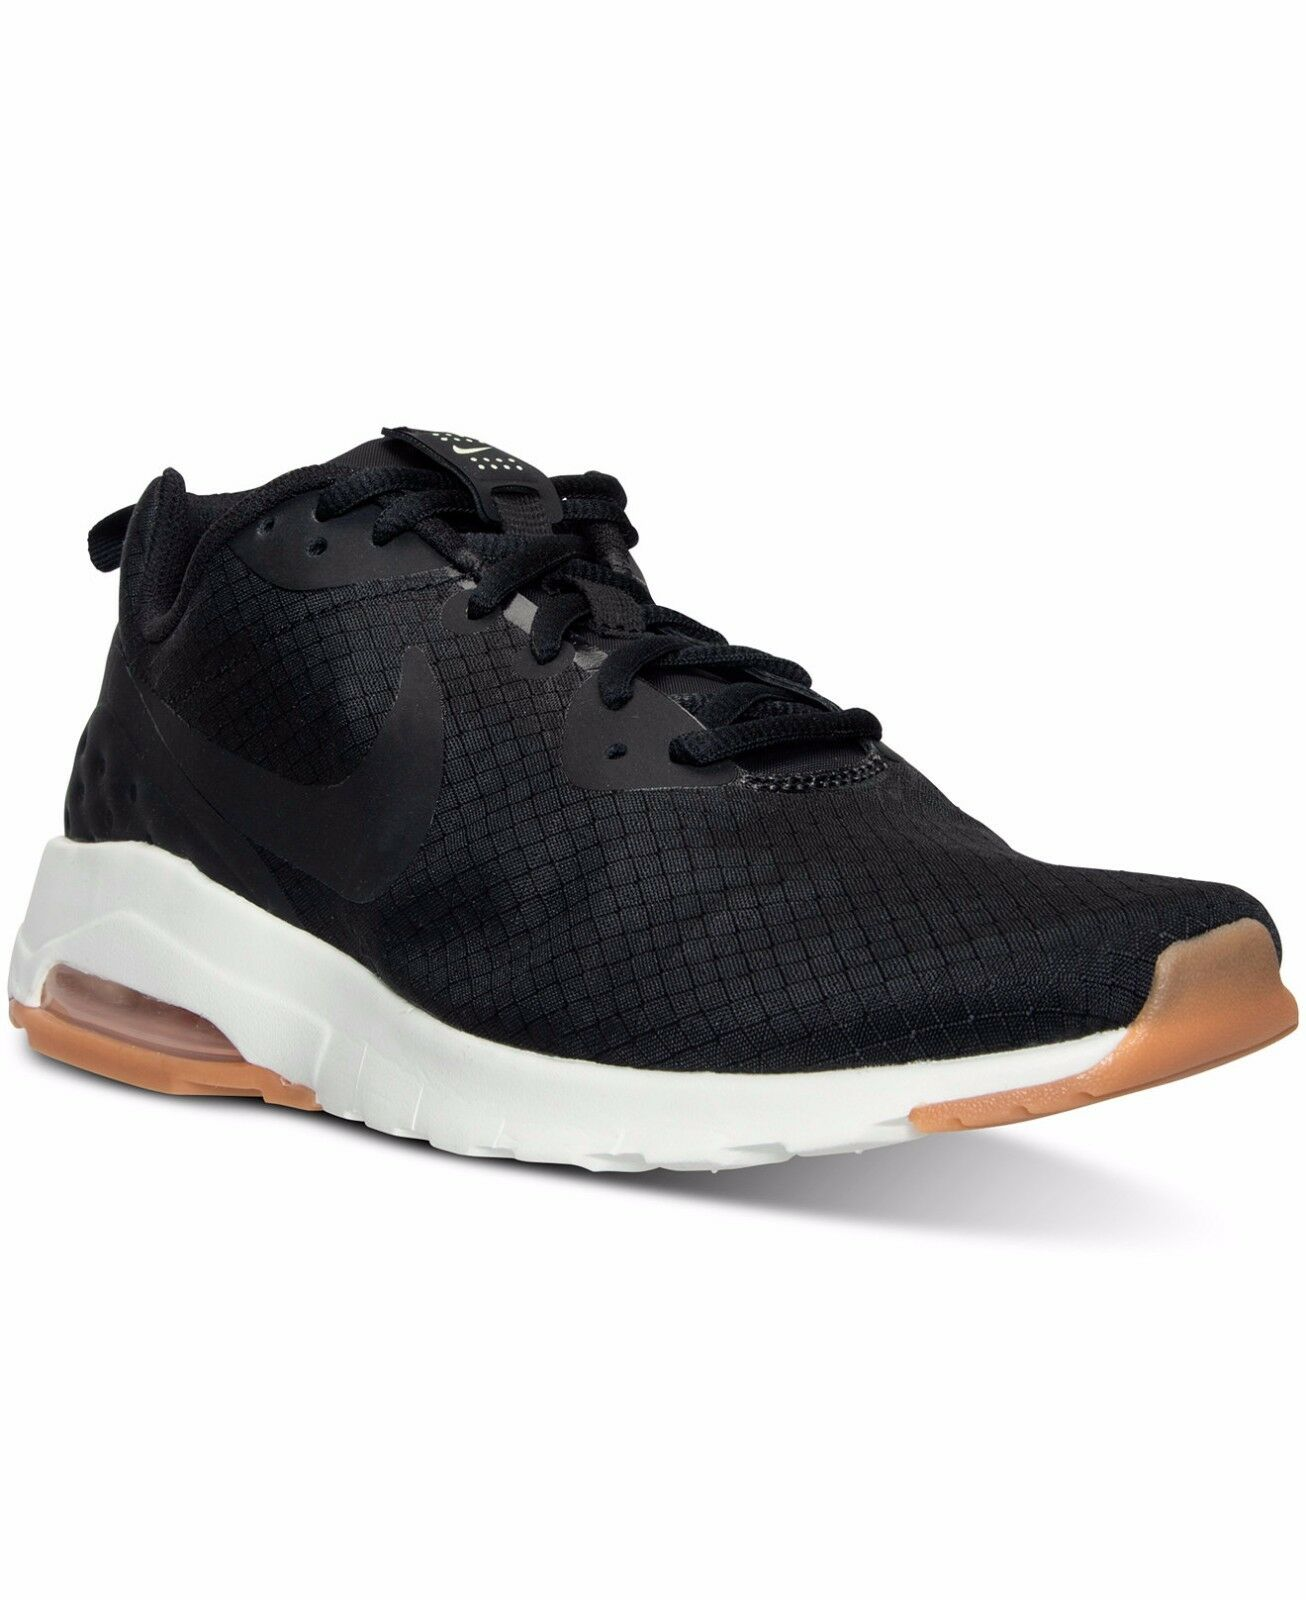 The most popular shoes for men and women Men's Nike Air Max Motion LW SE Running Shoes, 844836 001 Comfortable